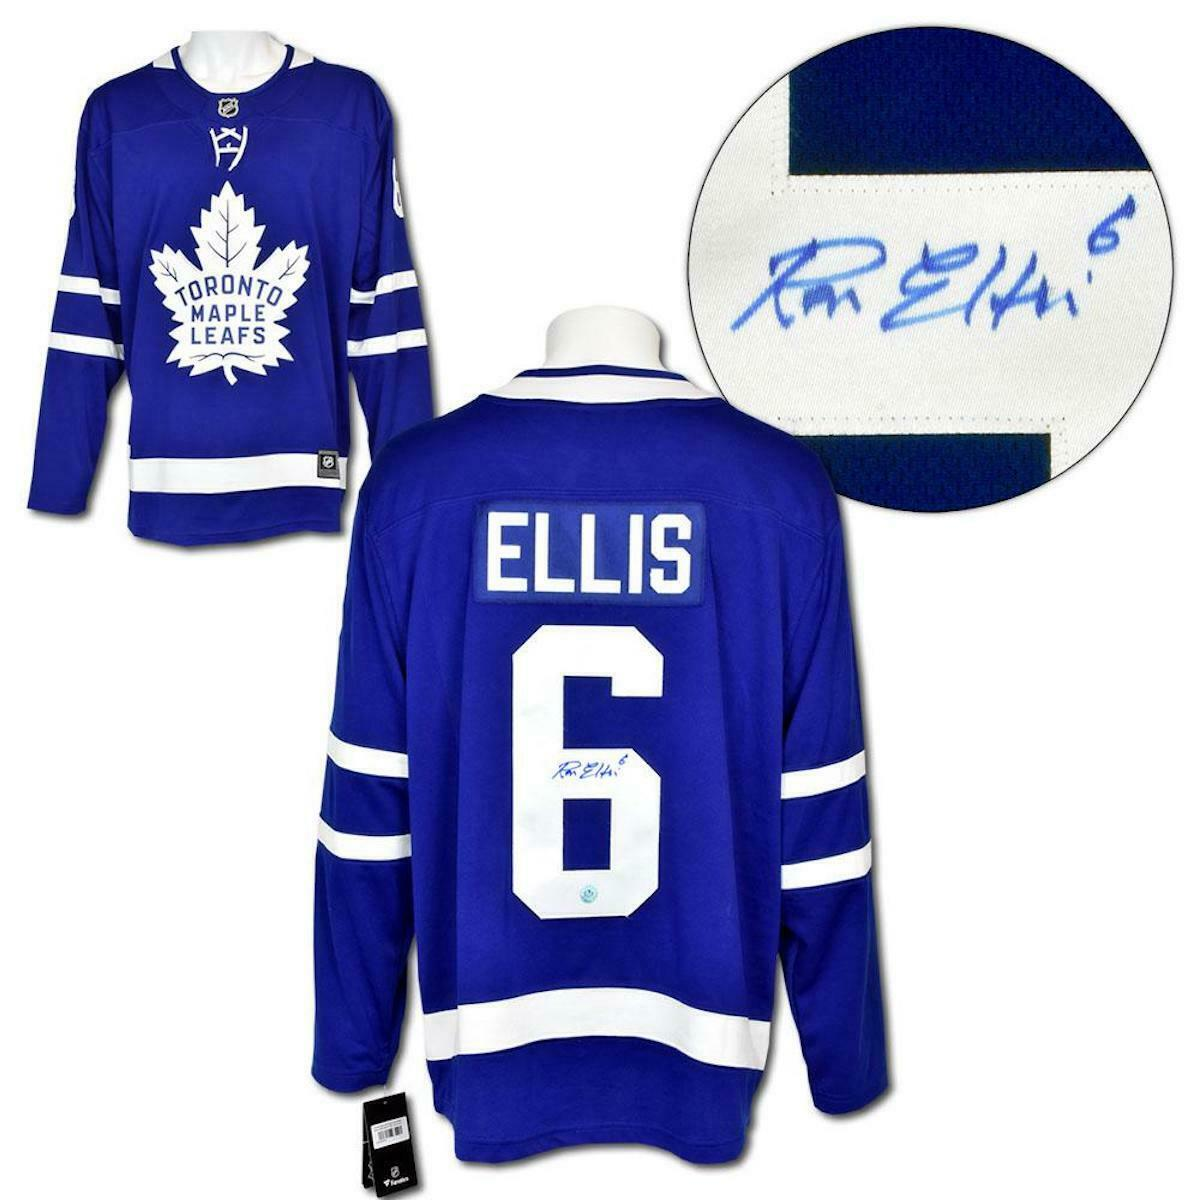 reputable site 71bf7 4c2d3 Details about Ron Ellis Toronto Maple Leafs Autographed Fanatics Replica  Hockey Jersey